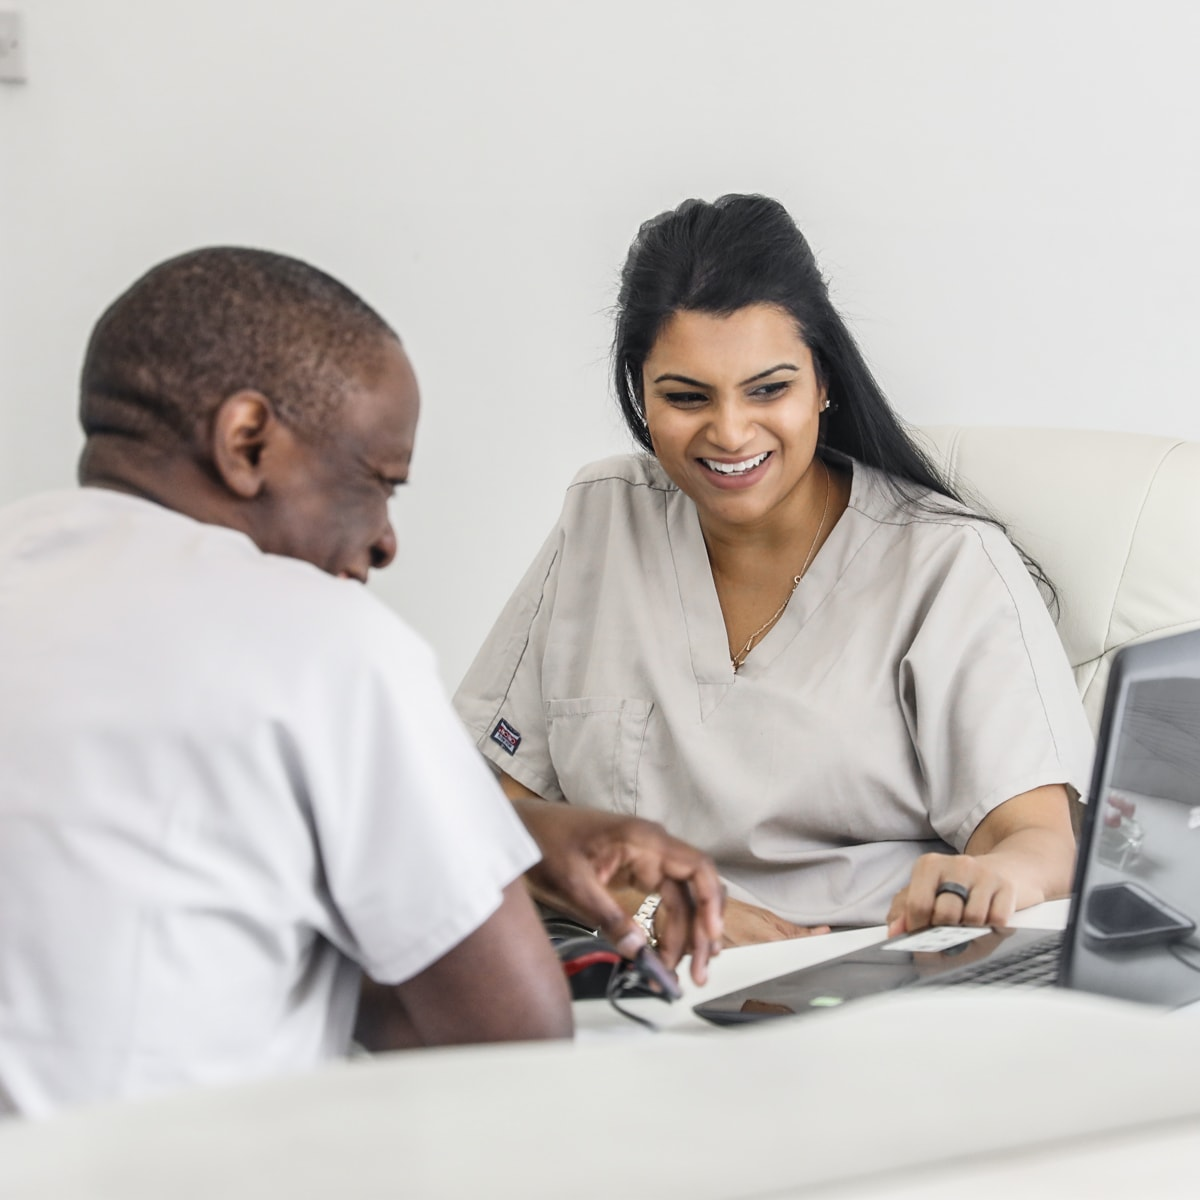 london dental specialists consultation price